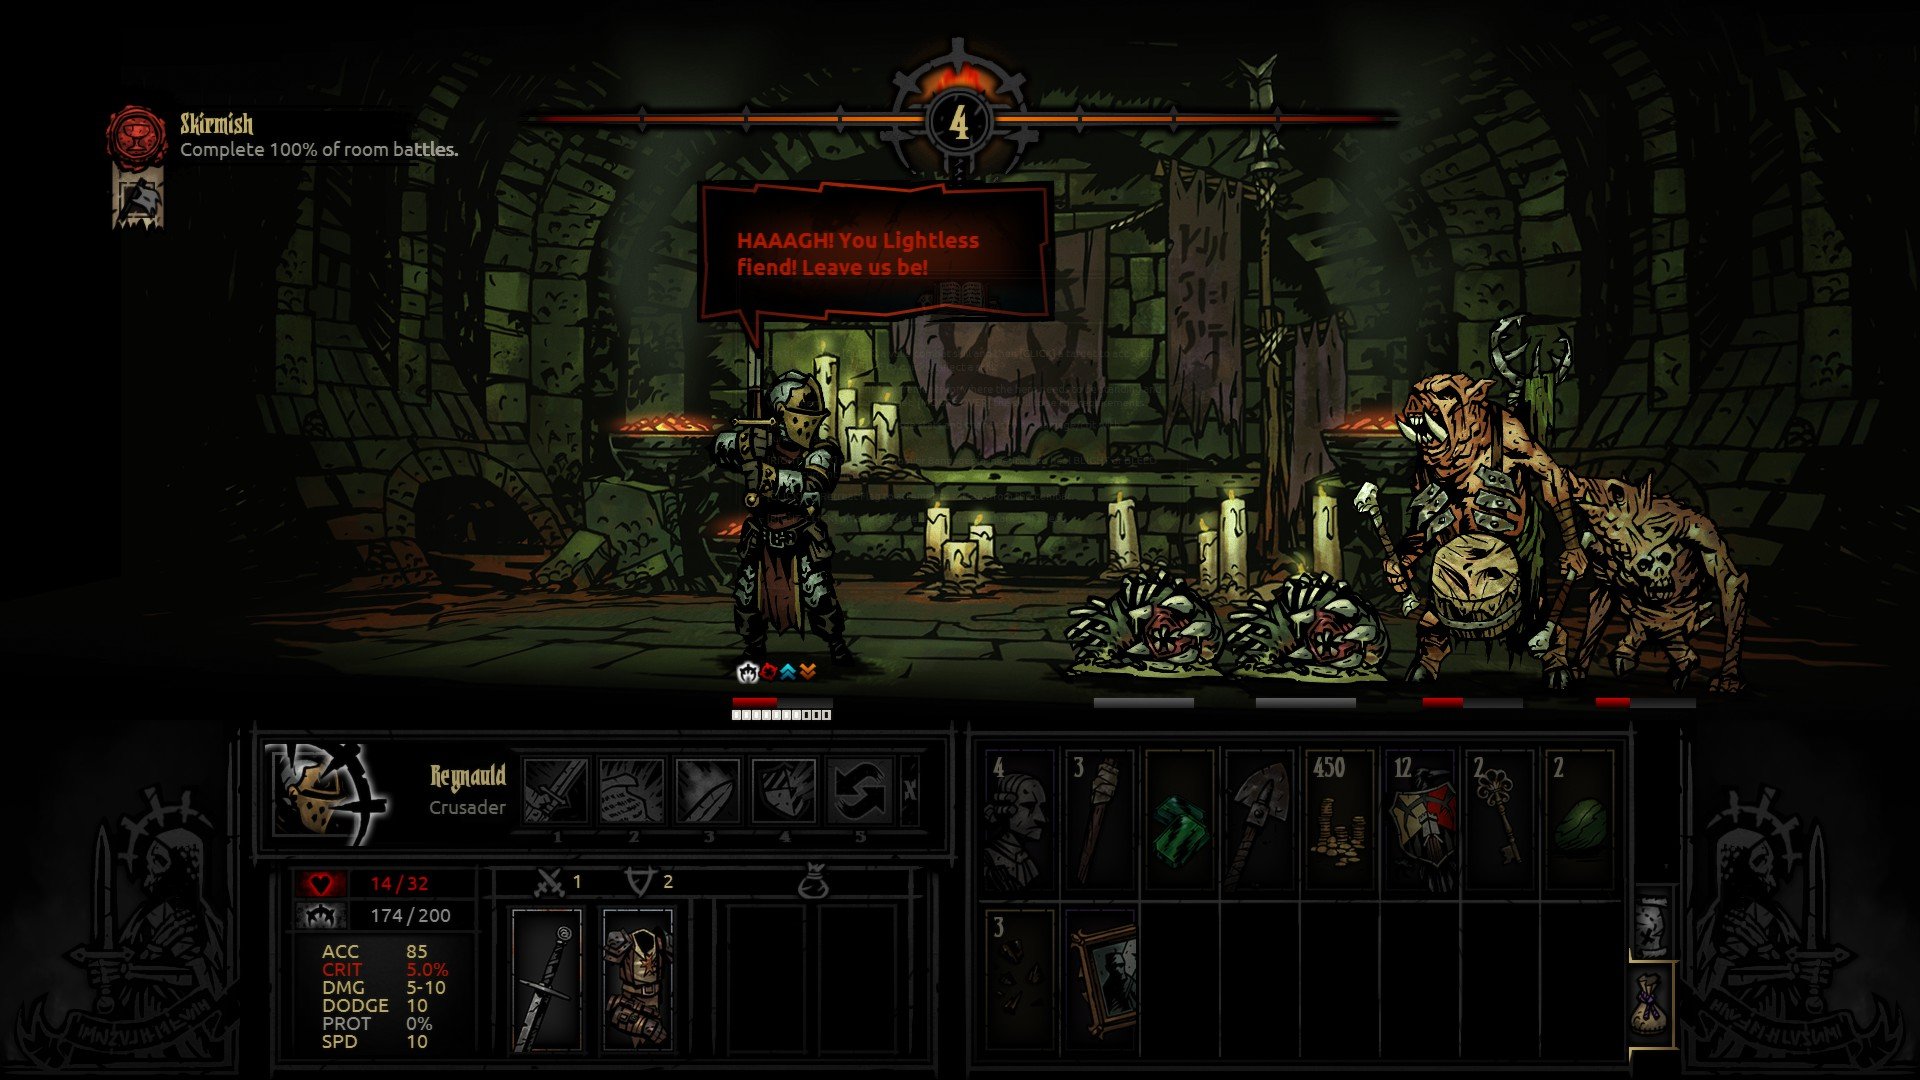 Darkest Dungeon.  First run on the latest patch had my whole party die of heart attacks in one combat. Reynauld woulda' lived, too, if not for the damn corpsepile.